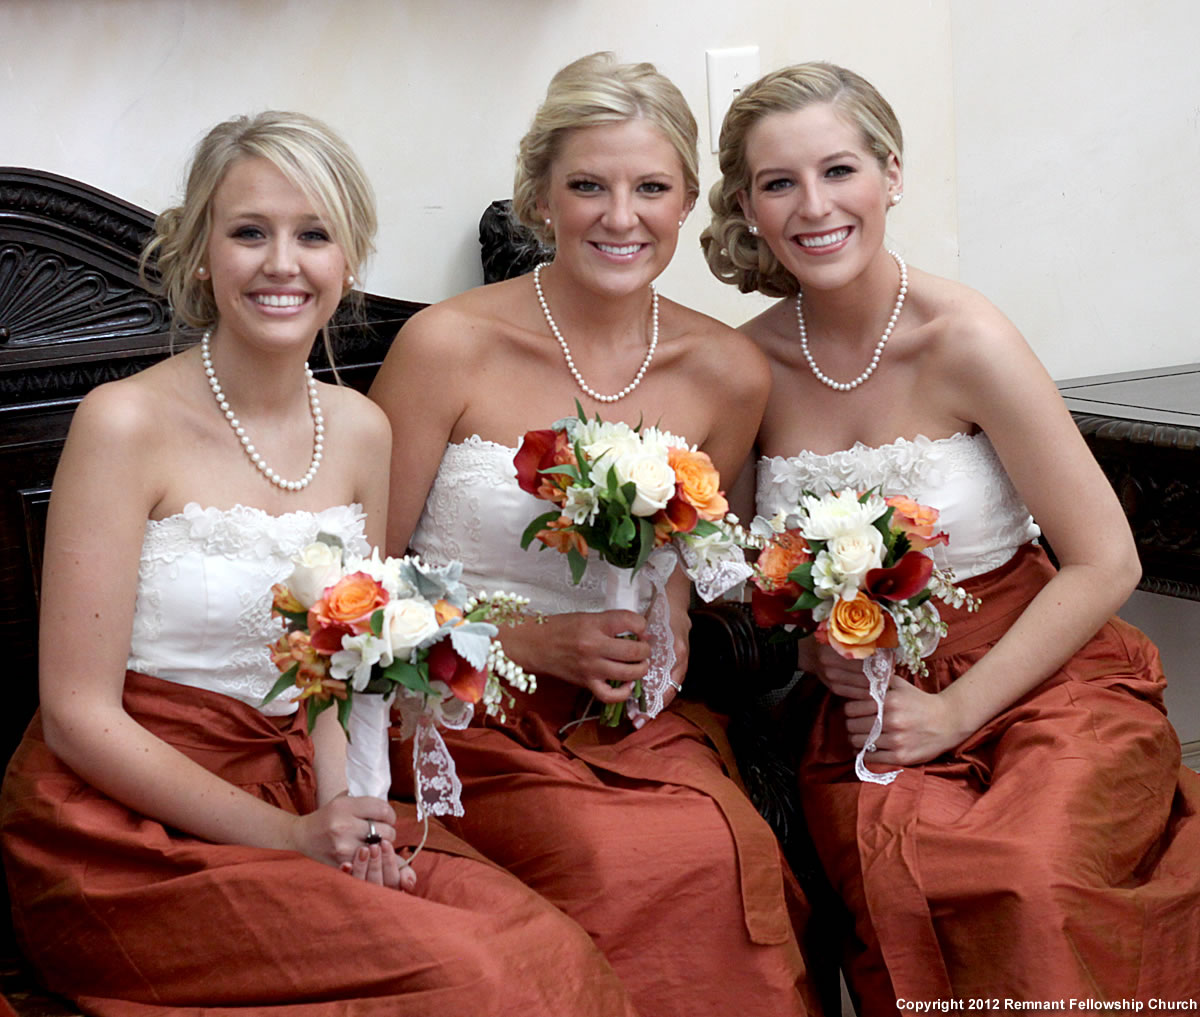 Orange remnant fellowship weddings fall bridesmaid dresses lace and burnt orange gadkemchaney covenant wedding ombrellifo Image collections